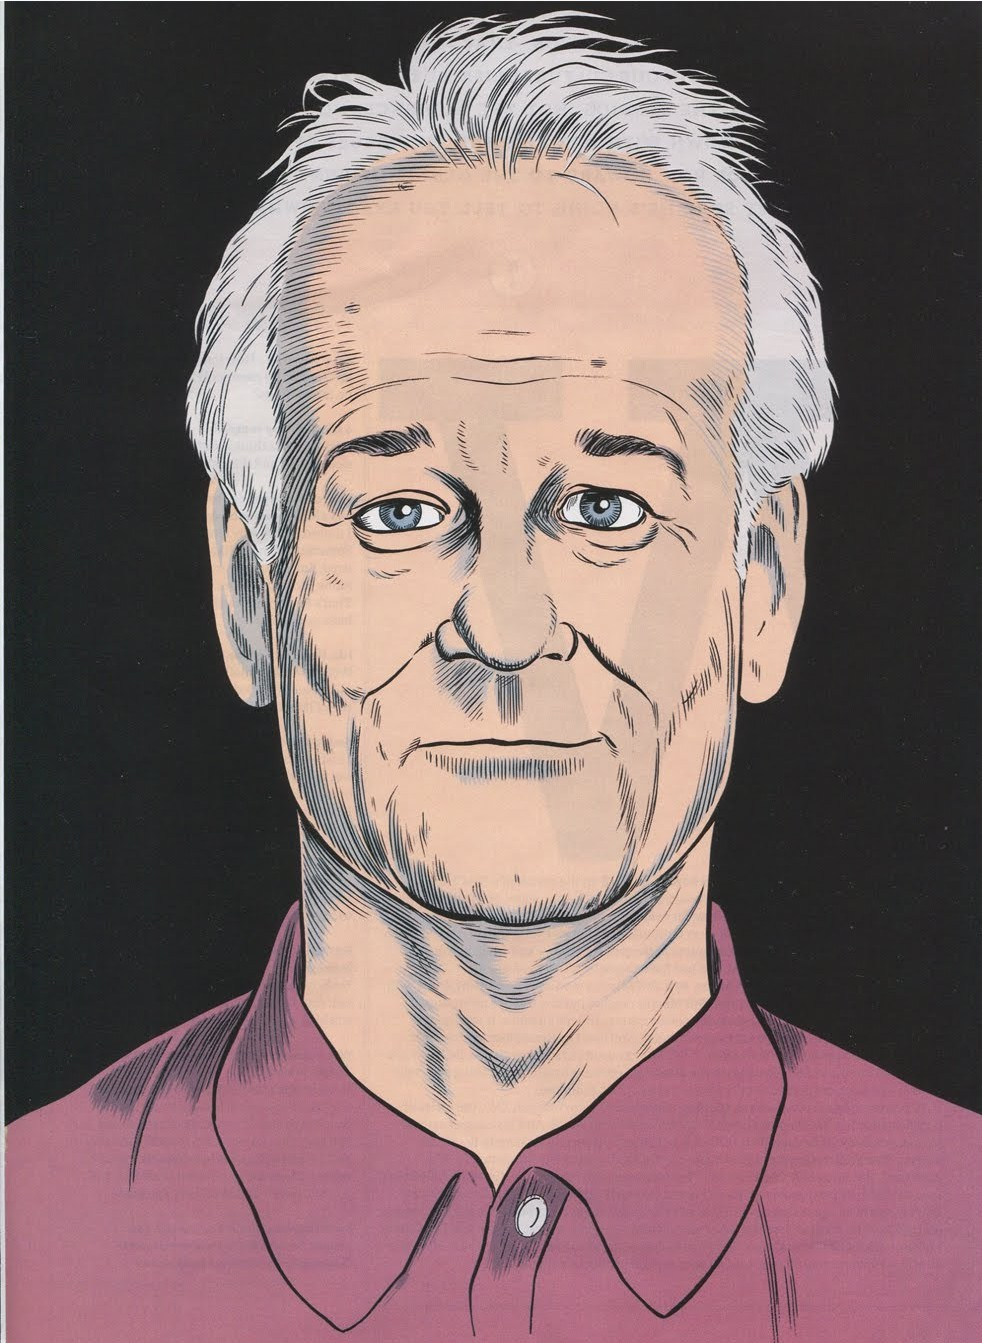 Bill Murray by Daniel Clowes.